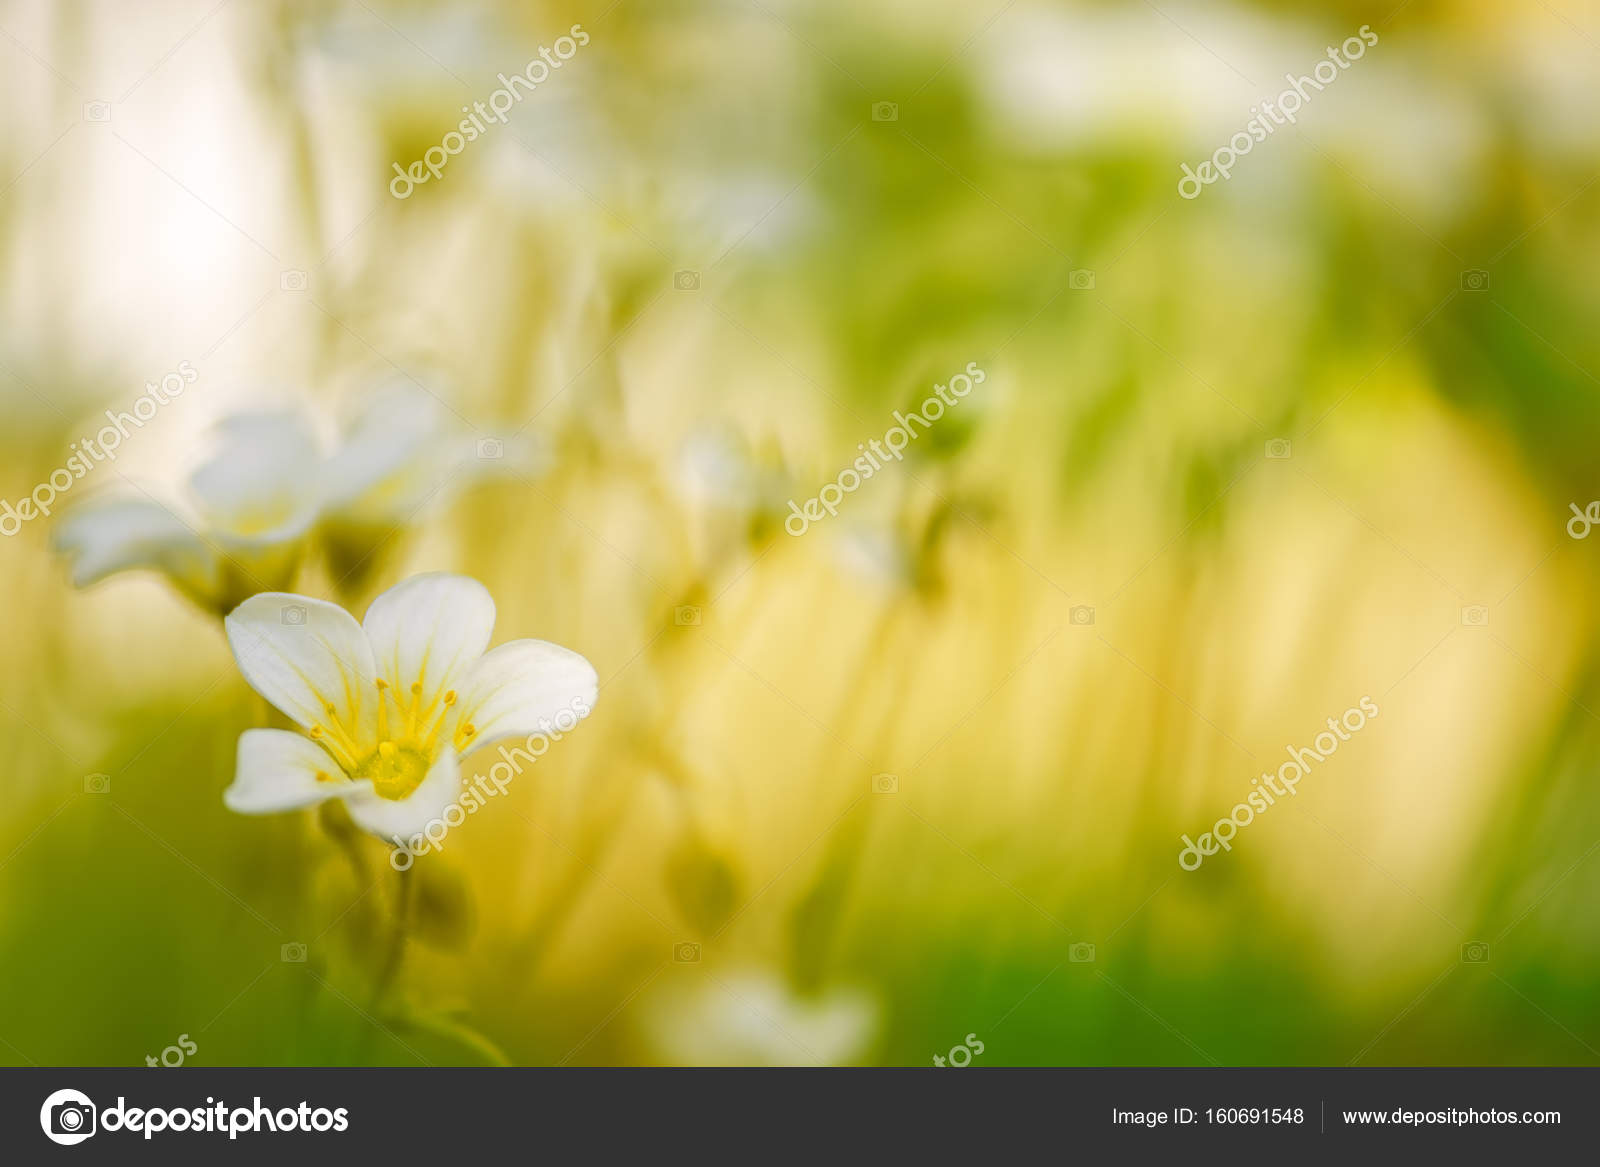 Small White Flowers In The Grass On A Beautiful Background Stock